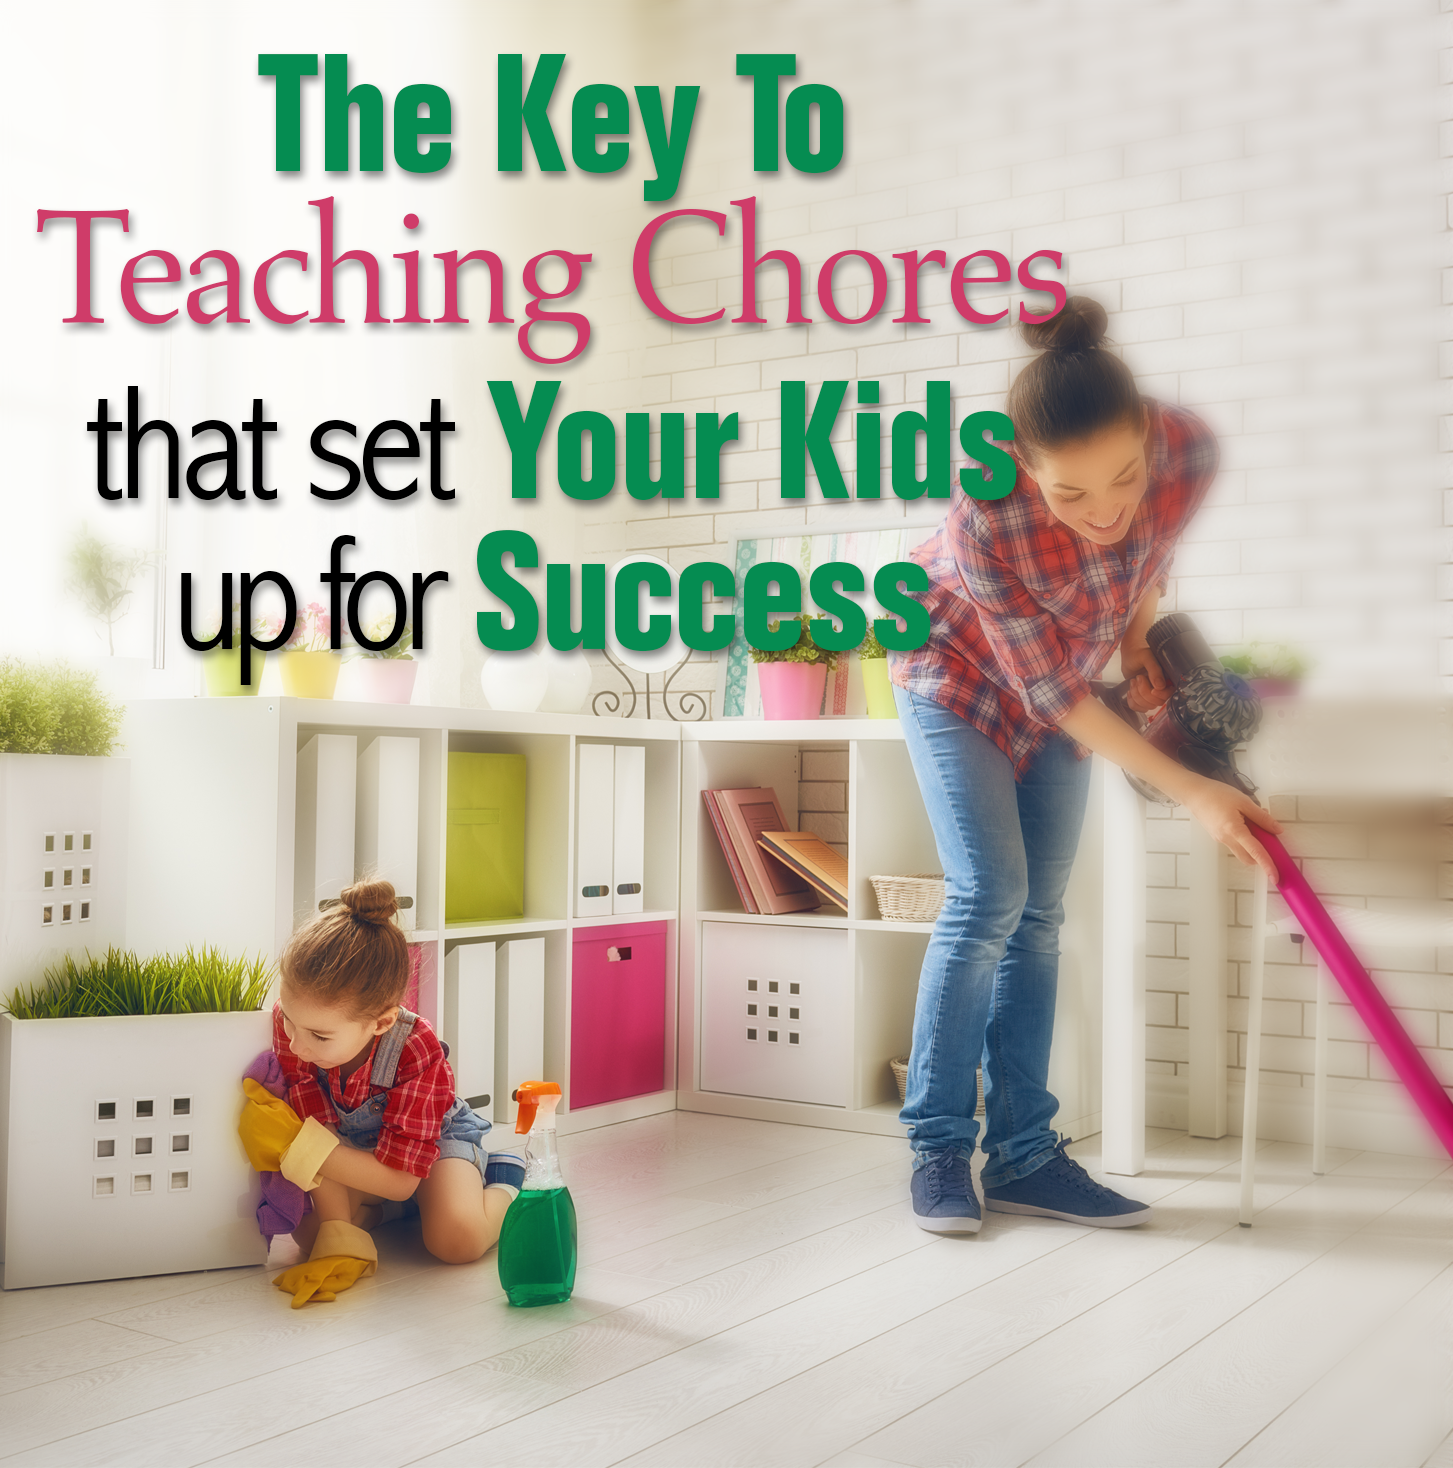 The Key To Teaching Chores That Set Your Kids Up for Success